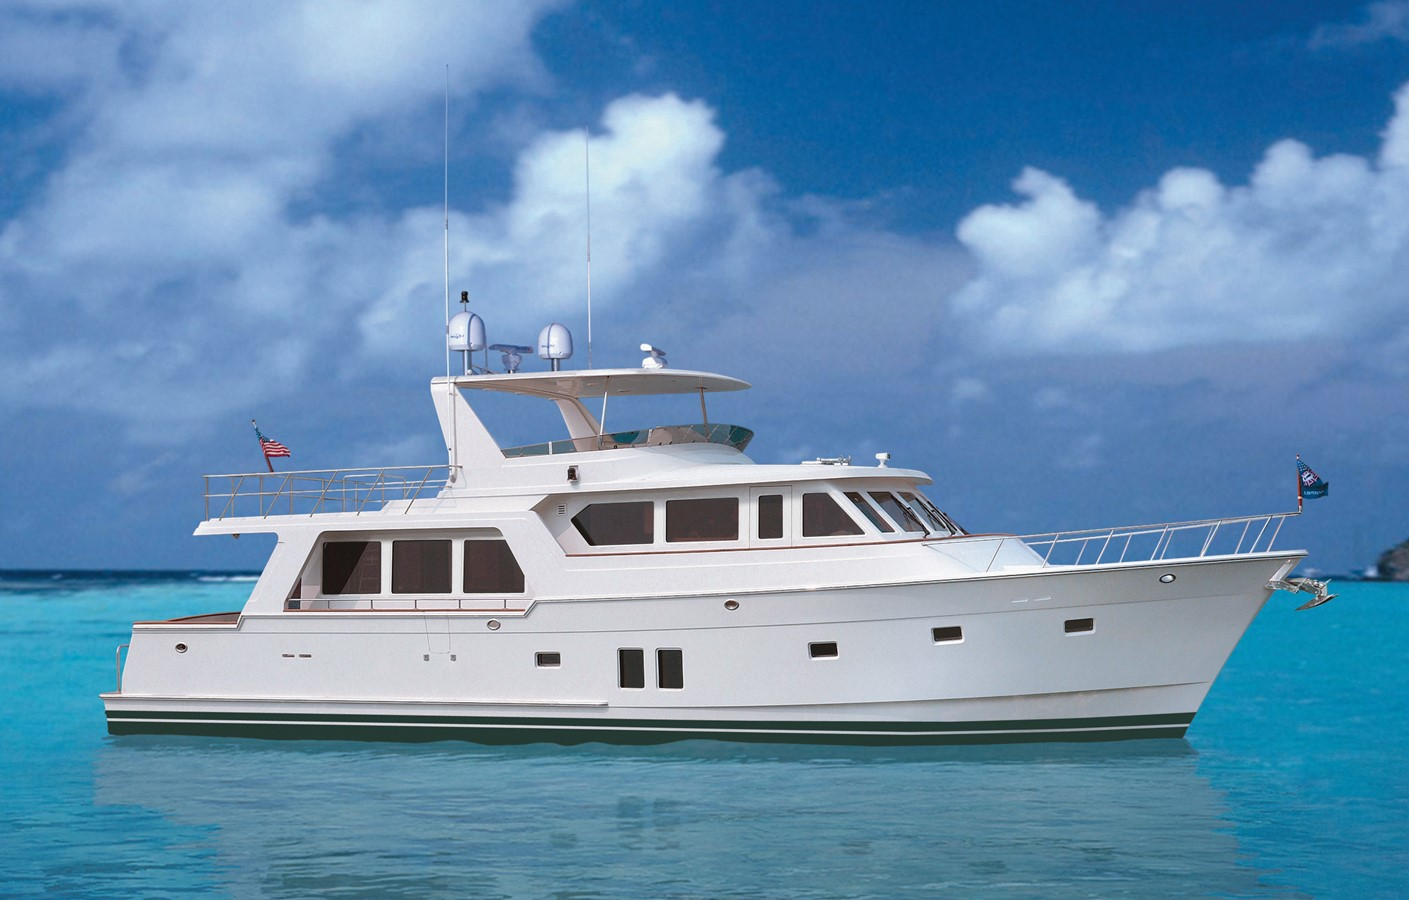 2020 OFFSHORE YACHTS Pilothouse Voyager Motor Yacht 2571161